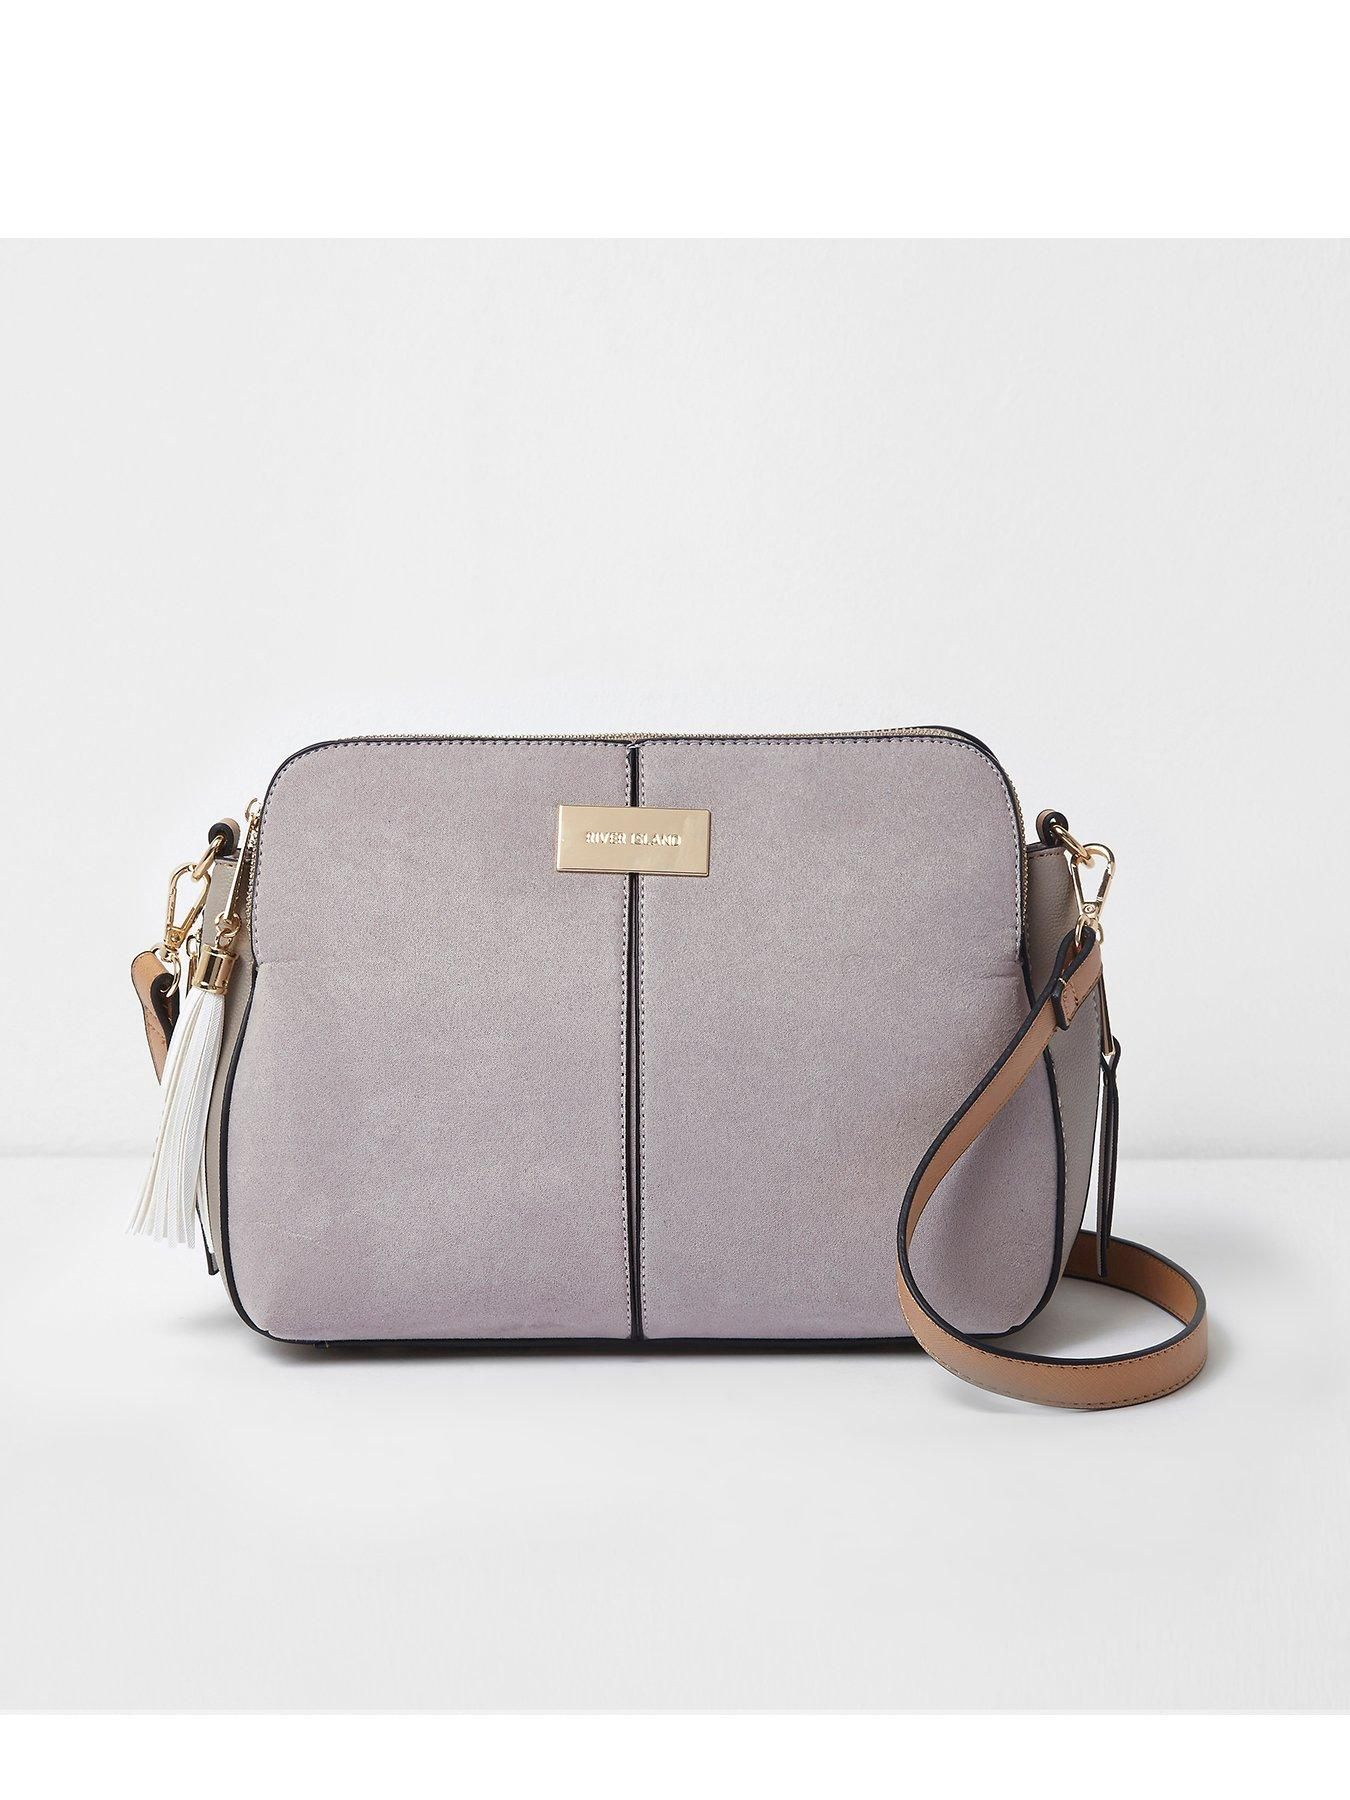 df9a9c93c64f River Island River Island Medium Triple Compartment Cross Body Bag- Grey |  littlewoods.com